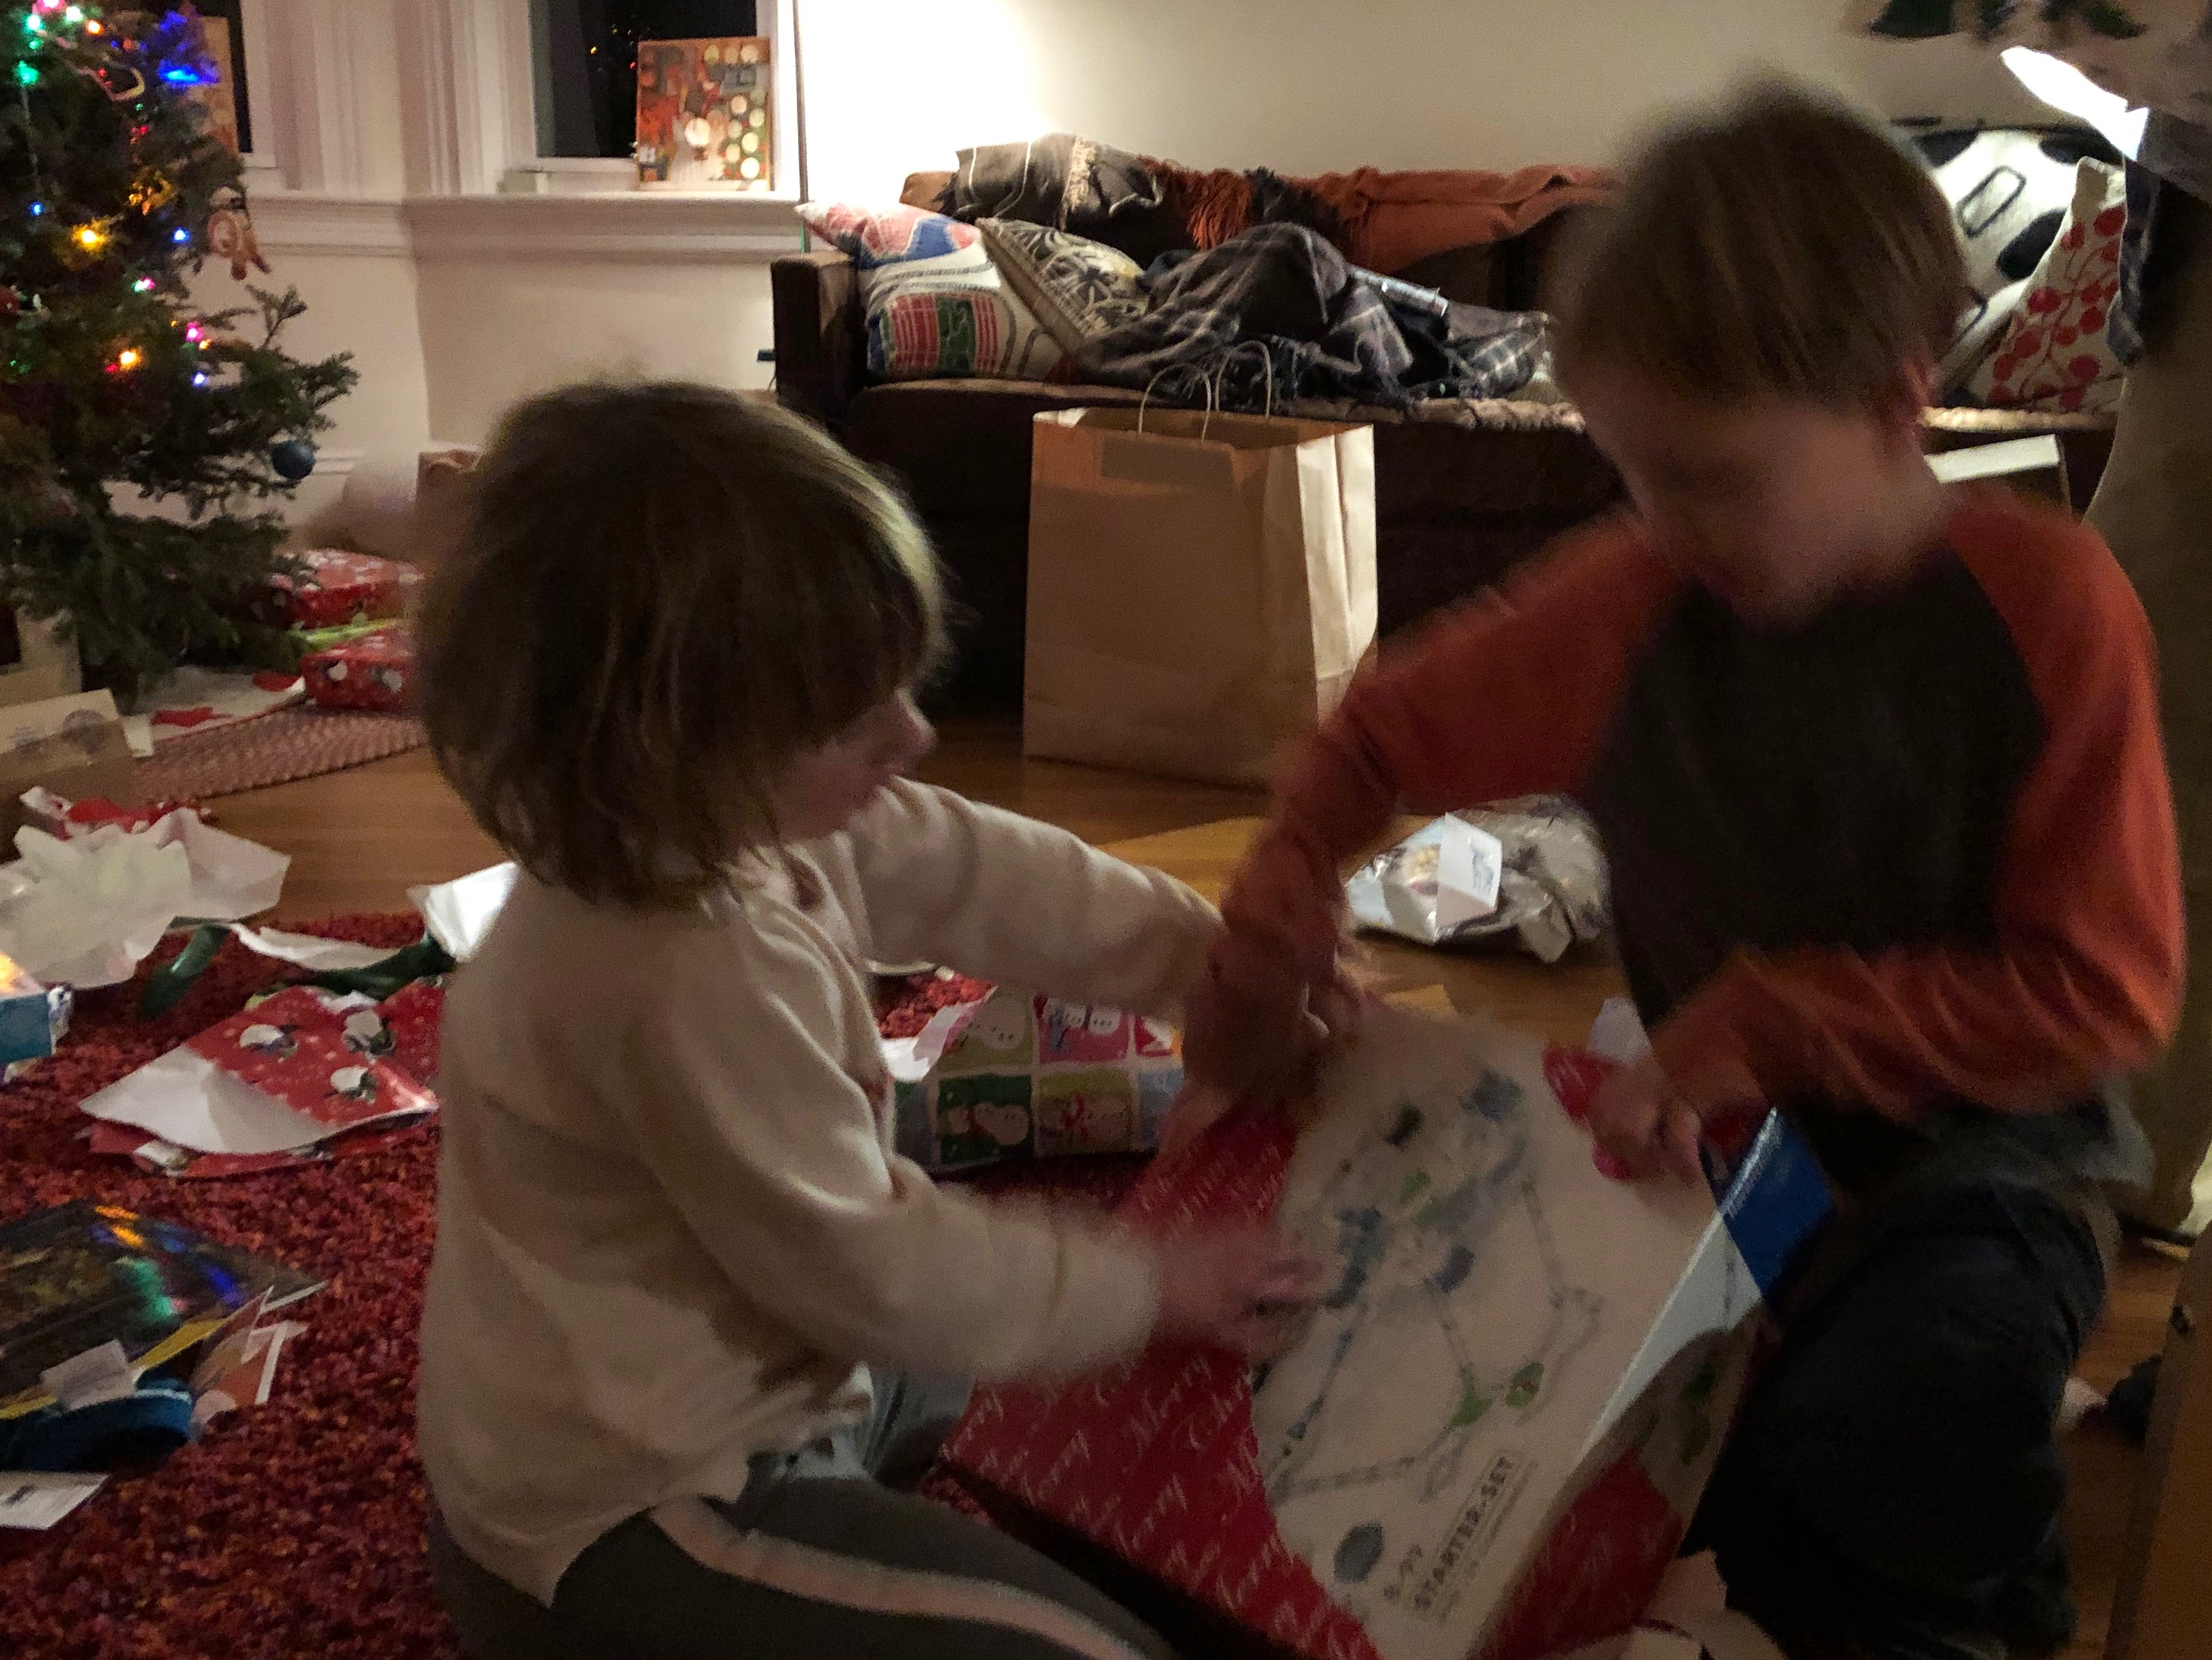 122018-ripping-thru-the-presents-at-breakneck-speed